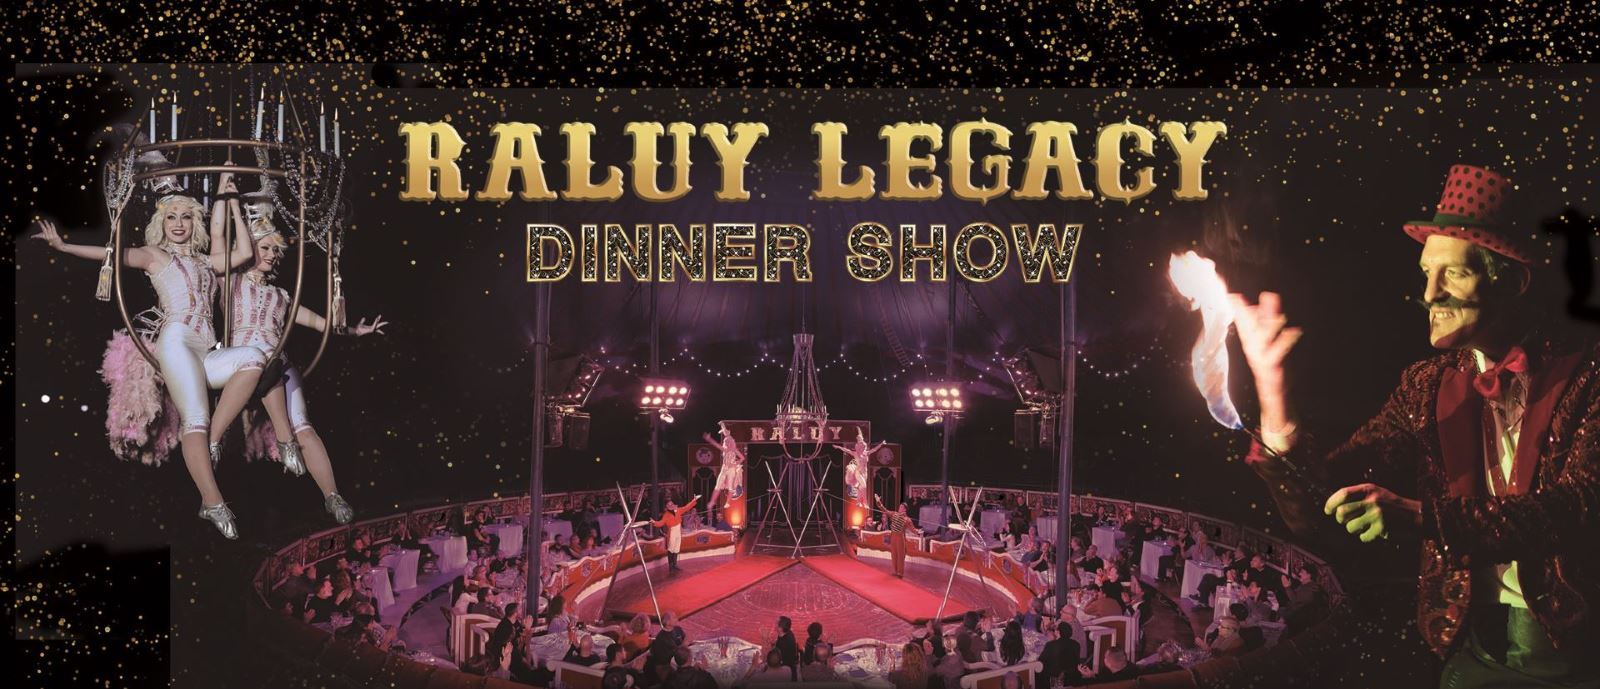 raluy-legacy-dinner-show-cena-espectaculo